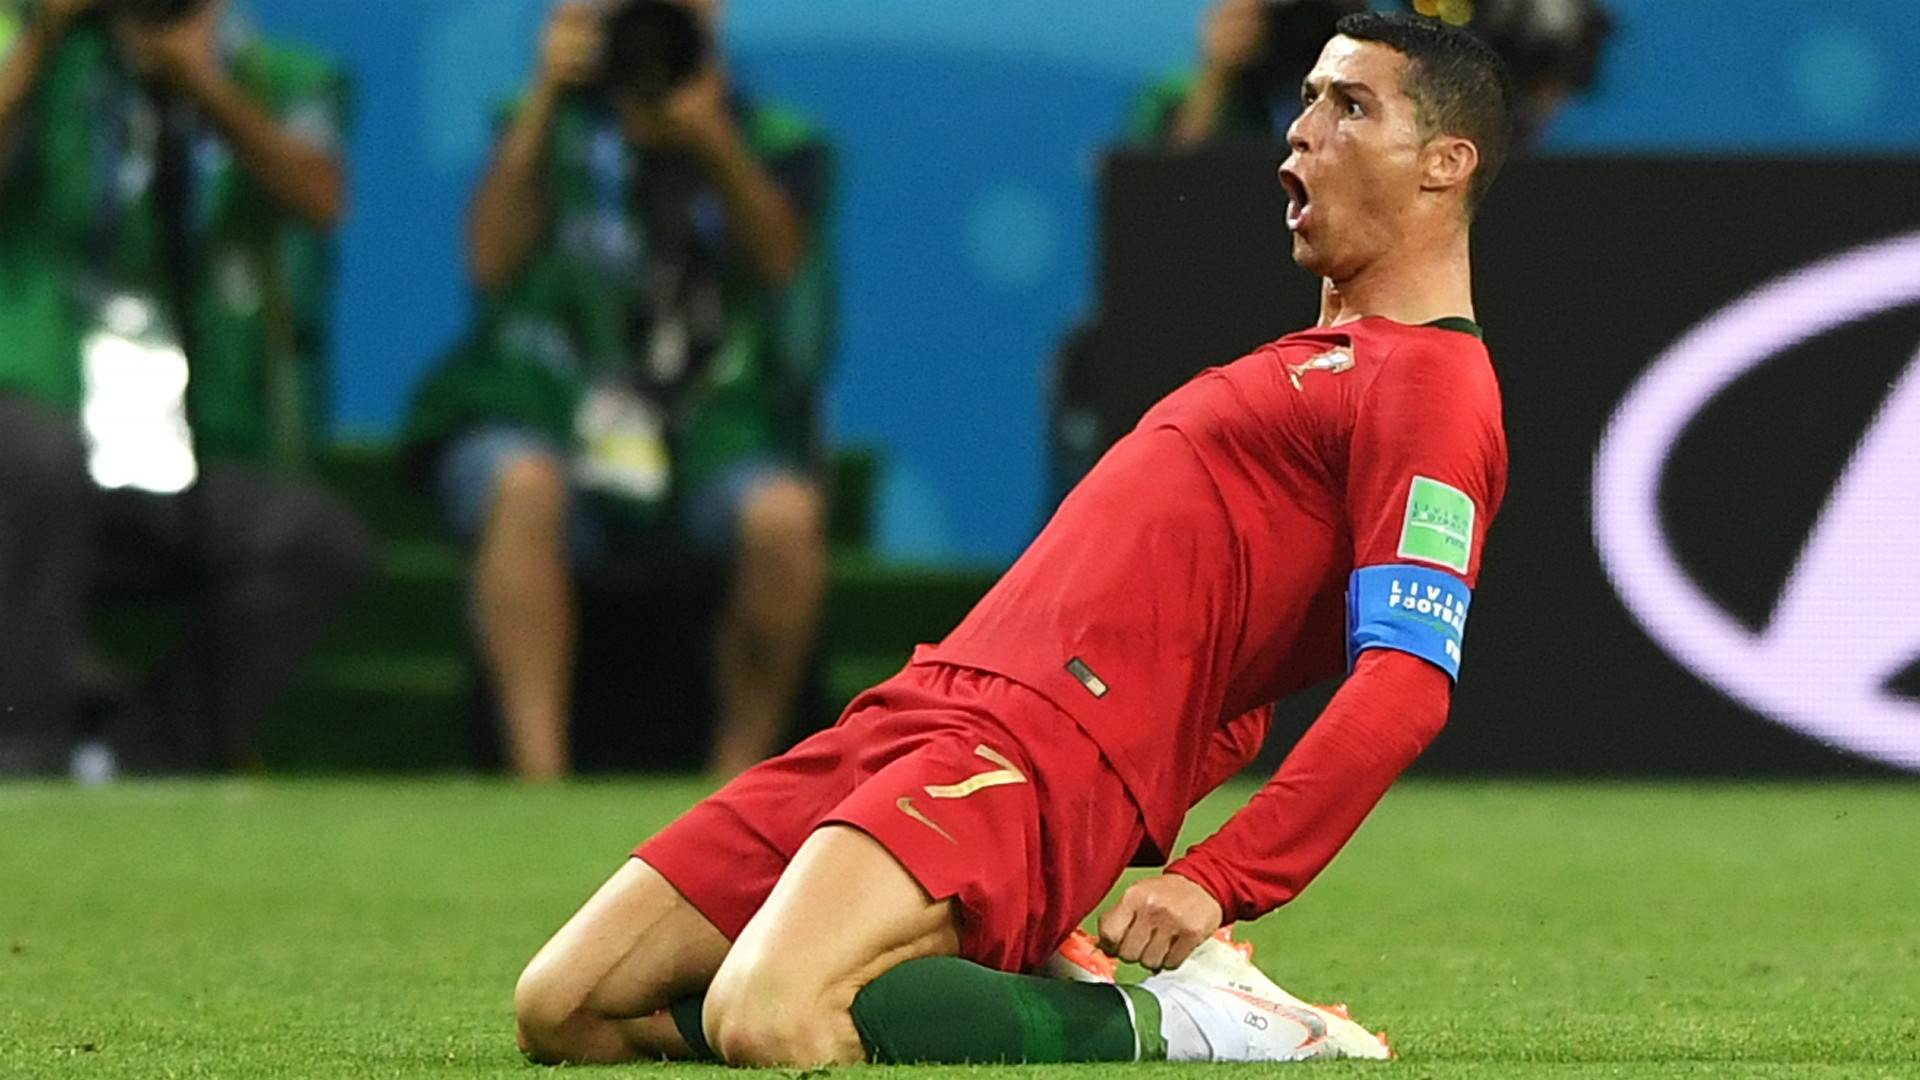 Portugal's Cristiano Ronaldo becomes Europe's top scorer in internationals